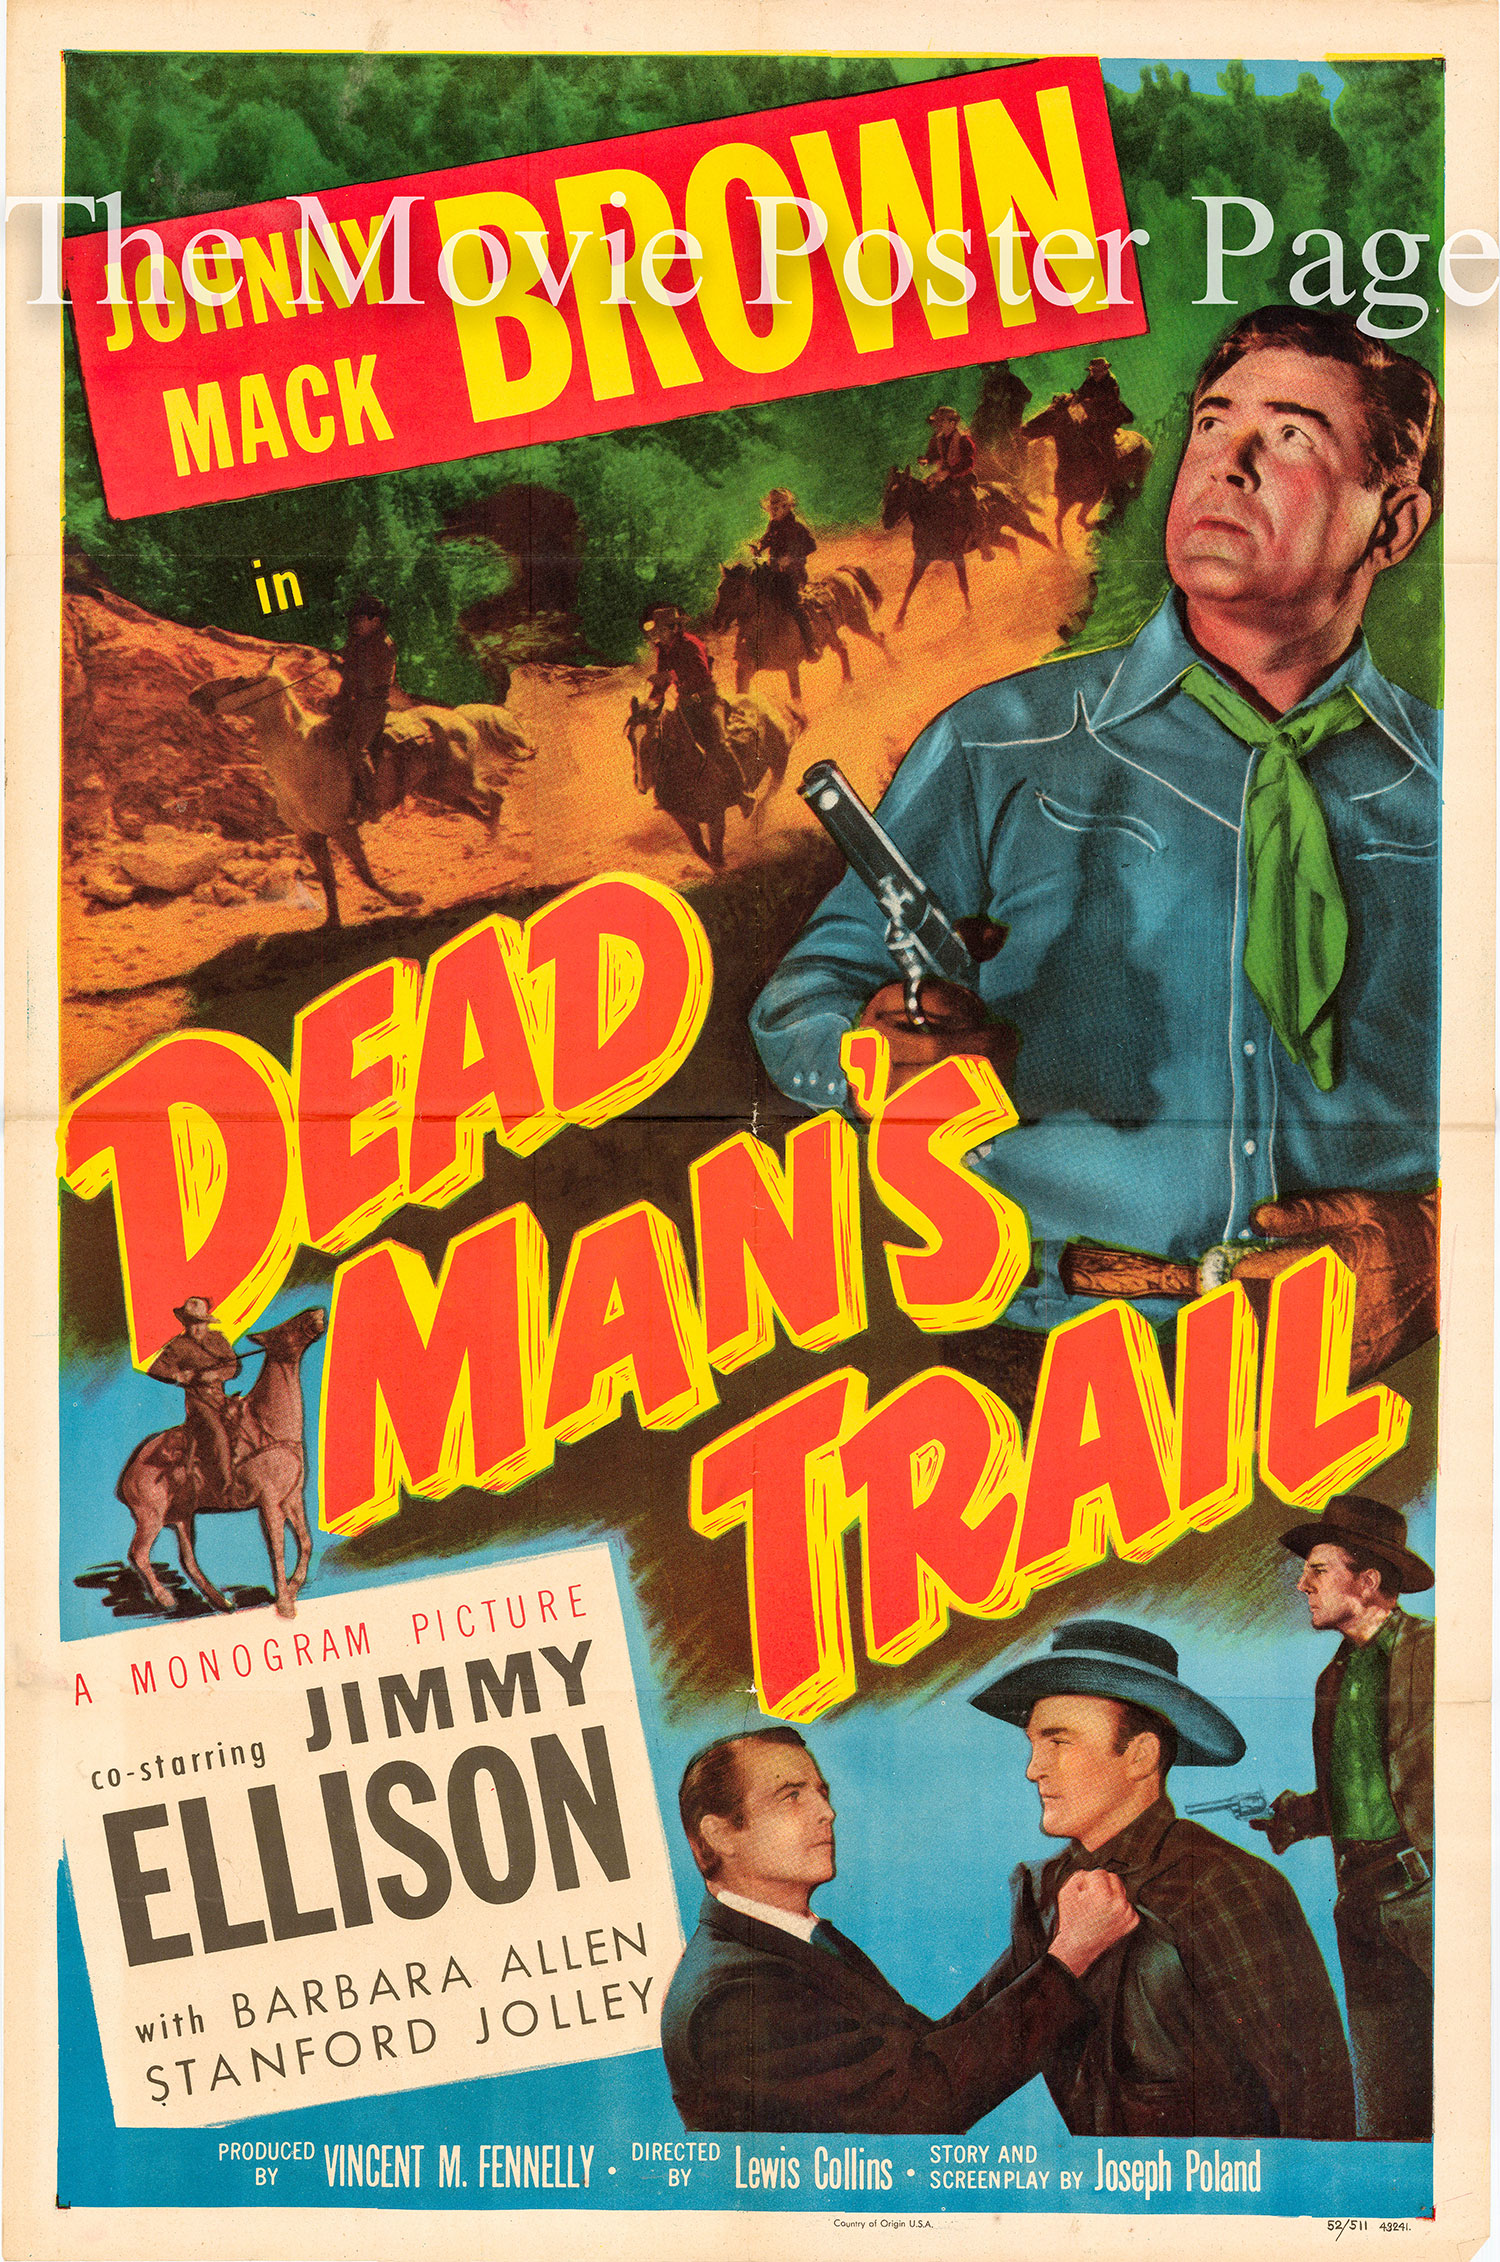 Pictured is a US one-sheet promotional poster for the 1952 Lewis D. Collins film Dead Man's Trail starring Johnny Mack Brown.